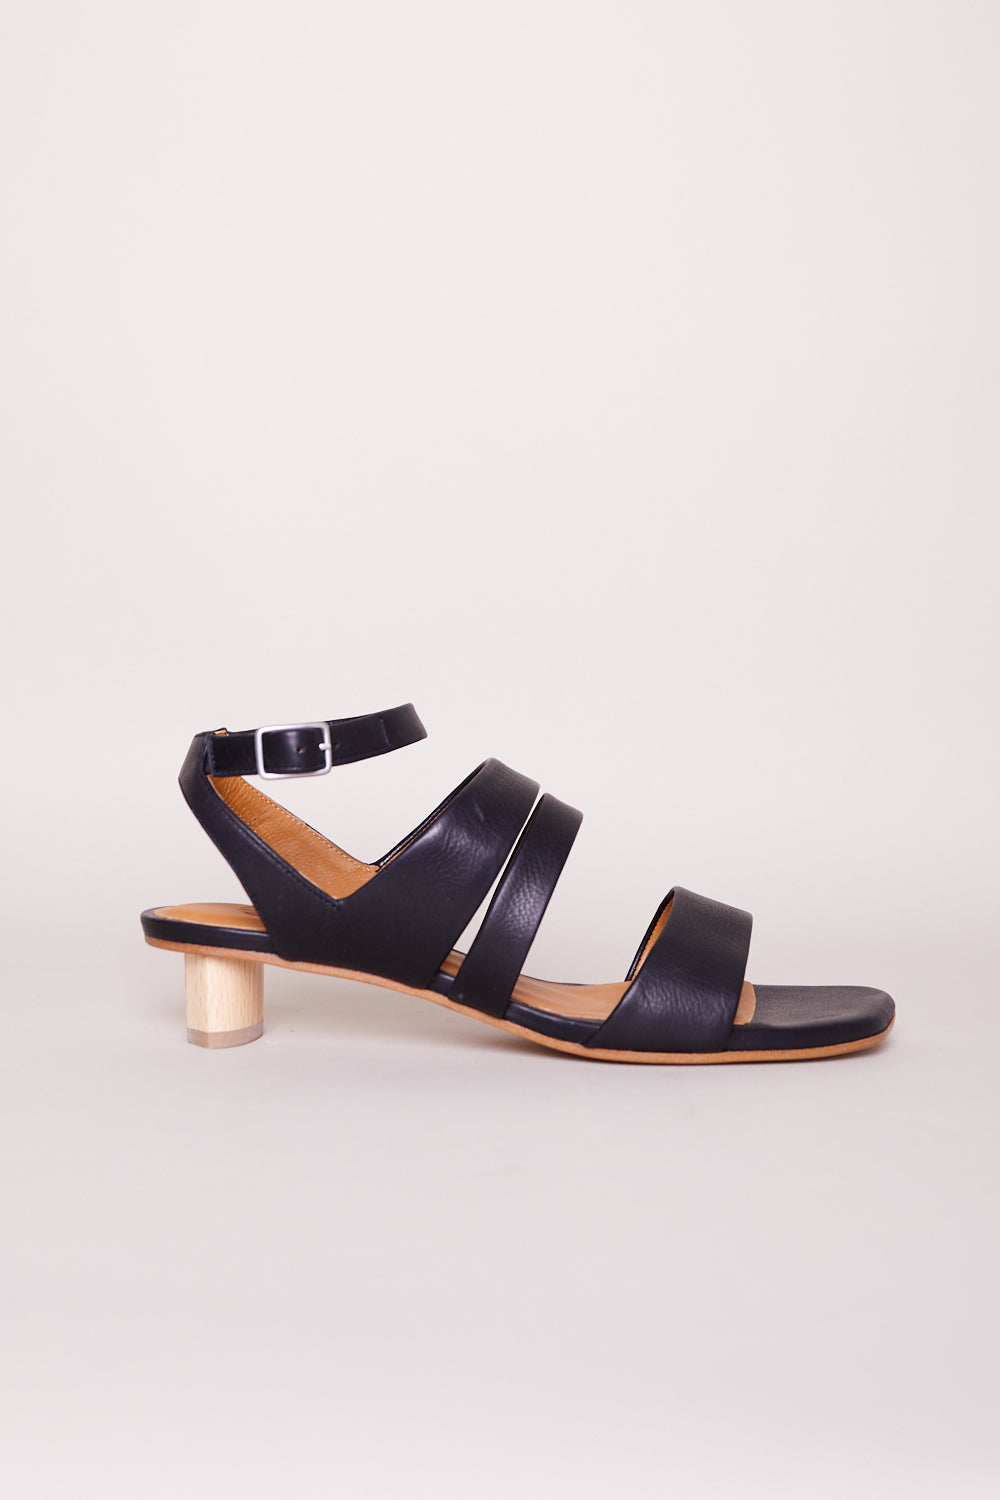 Sloan Sandal in Frida Black